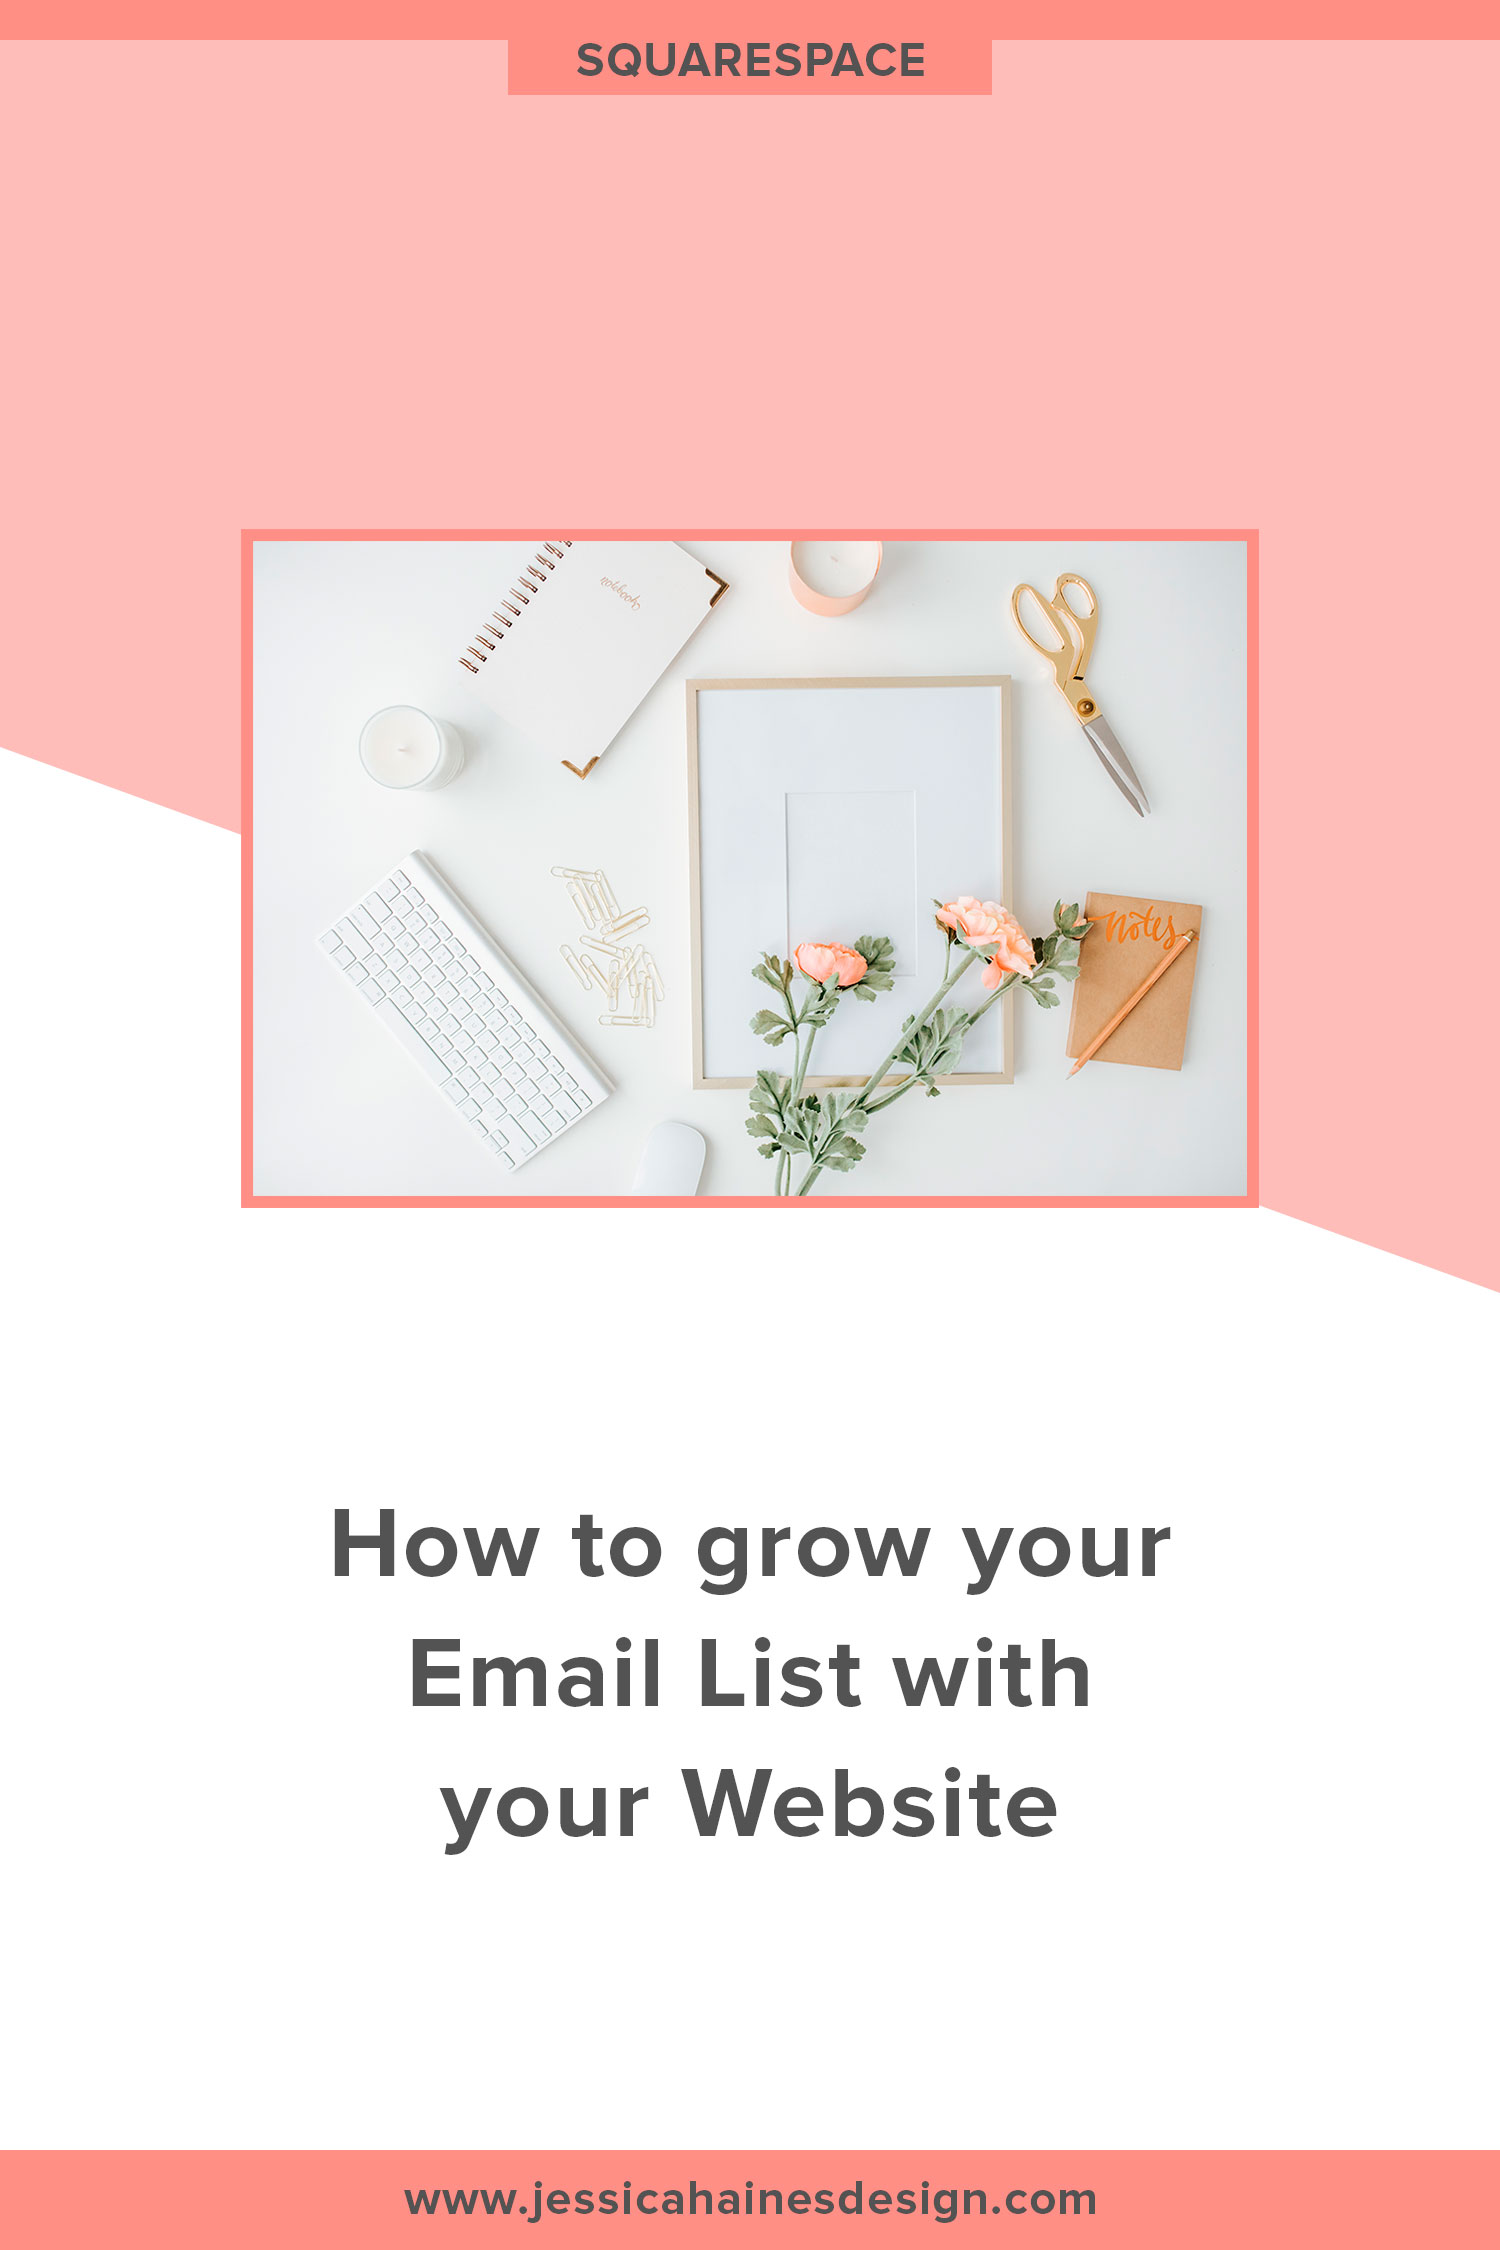 Only a small number of people are ready to buy when they land on your website. Instead of losing them to the internet never to be seen again, wouldn't it be nice if you could continue to build trust and be top of mind for them so when they are ready to buy, you are the obvious choice? Growing an email list can help you with that, and this post will show how you can use your website to grow your list | www.jessicahainesdesign.com